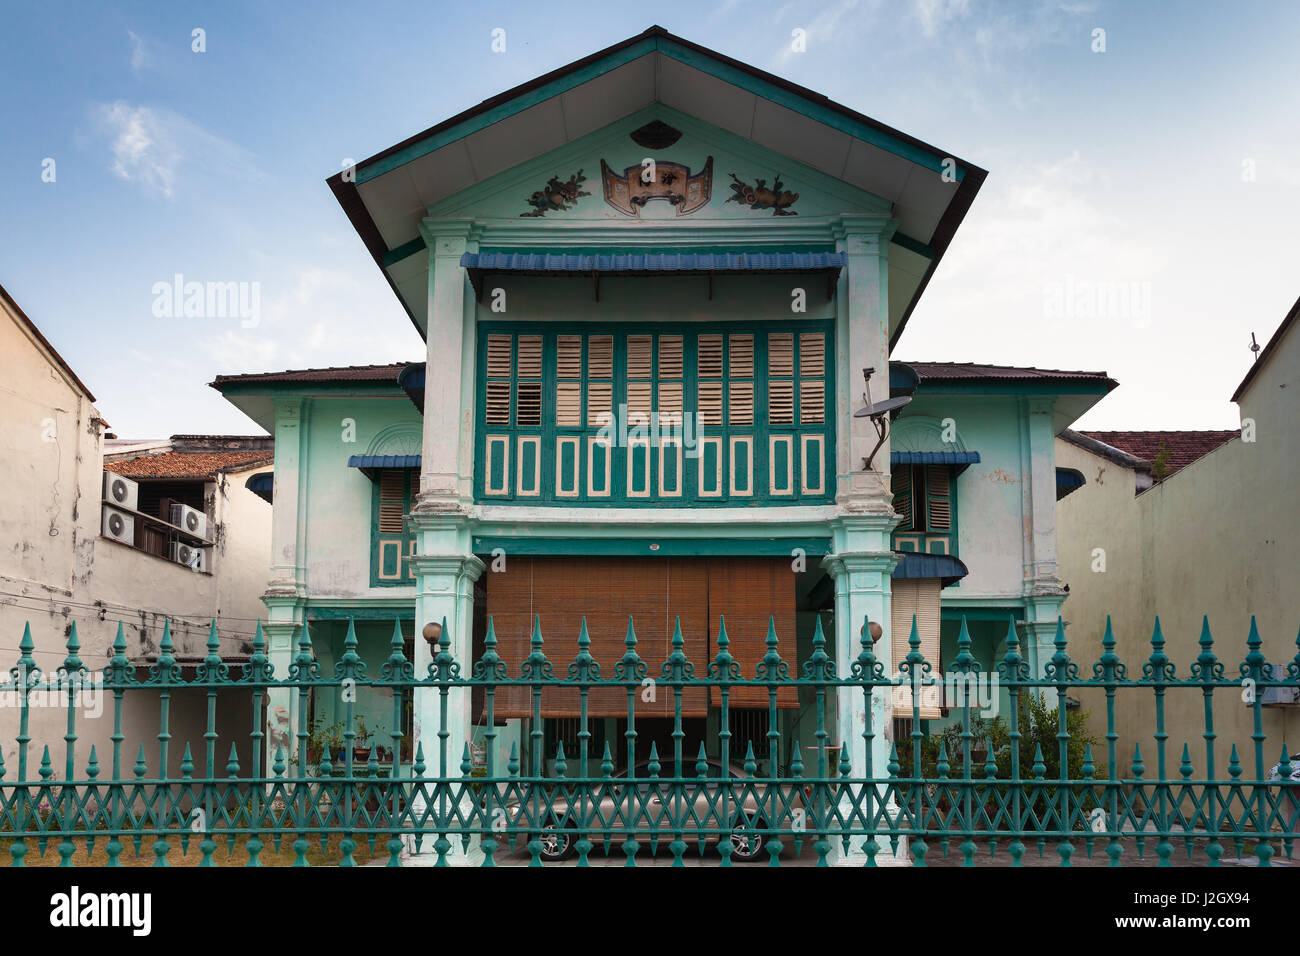 GEORGE TOWN, MALAYSIA - MARCH 22: Facade of the old historical shophouse in George Town on March 22, 2016 in George - Stock Image